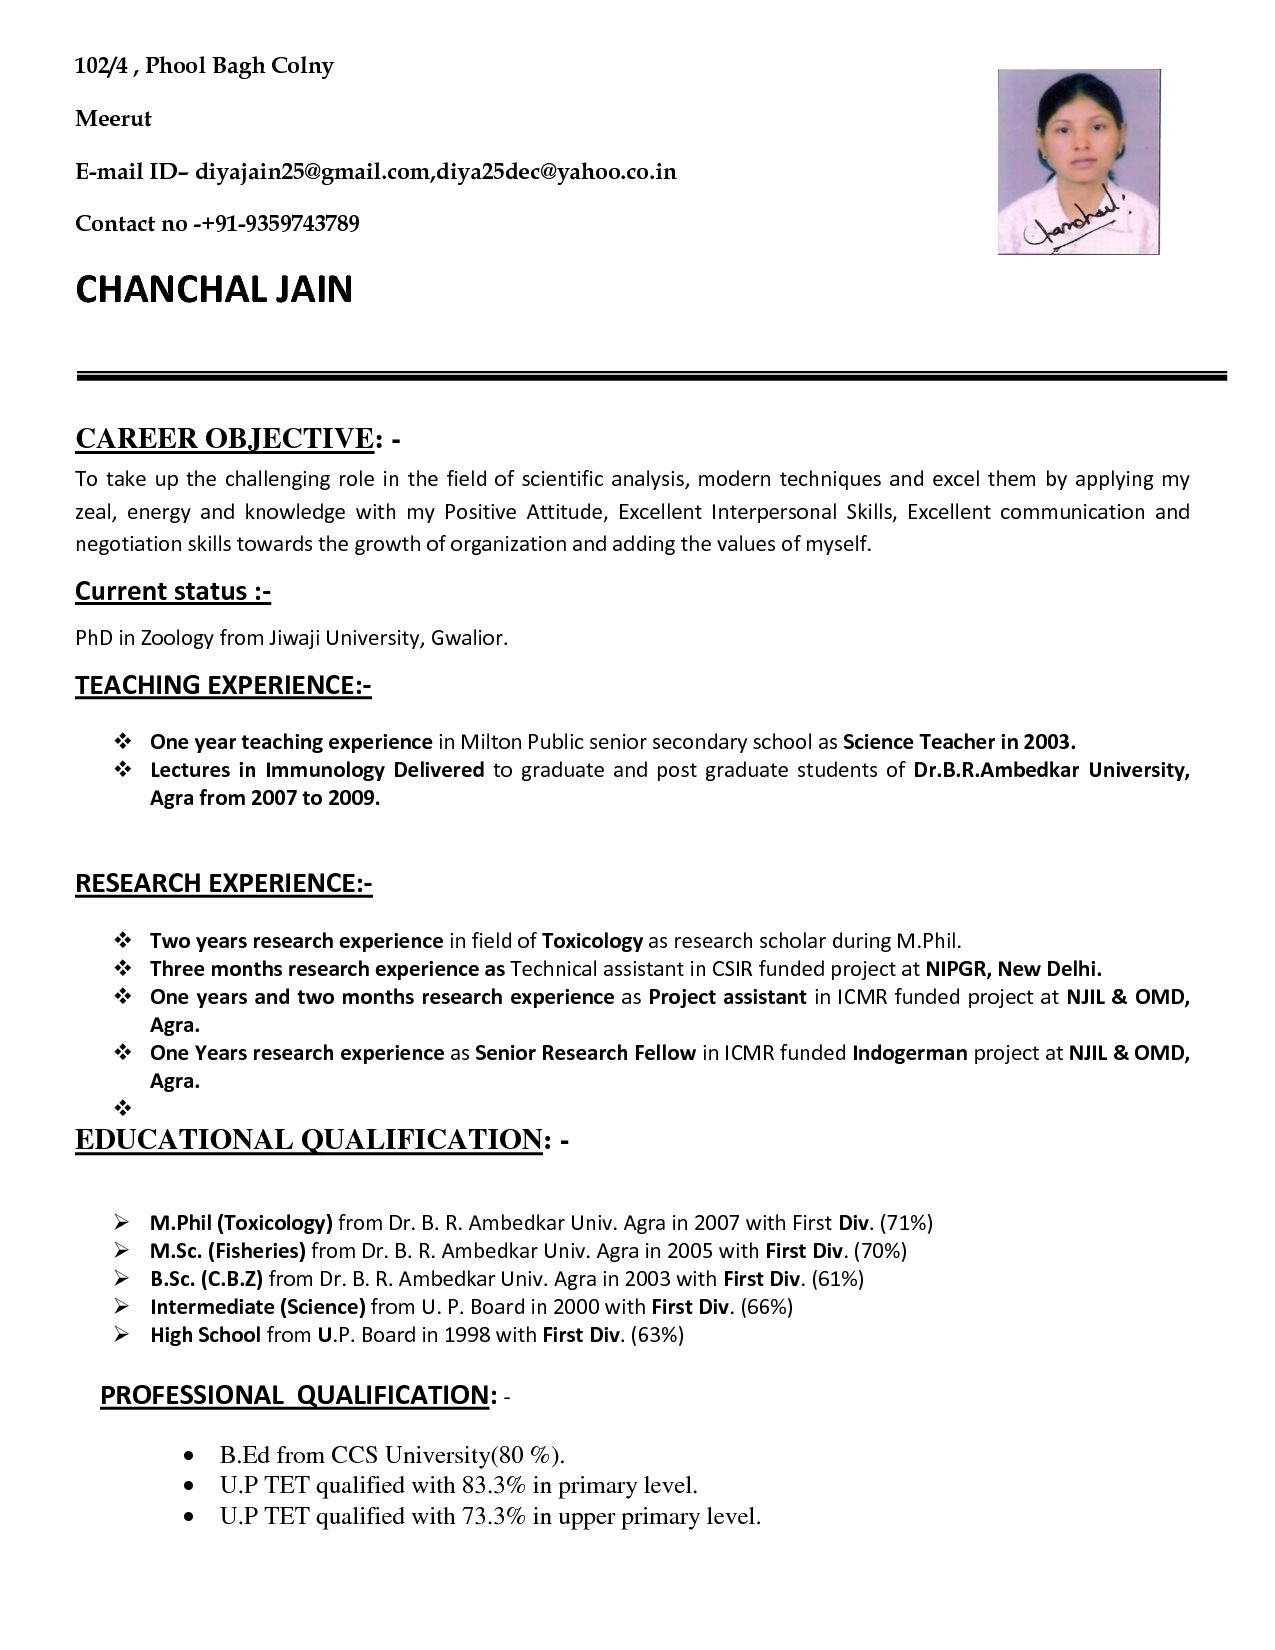 Resume Format For School Teacher Job It Resume Cover Letter Sample Biodata Sample For Teacher Job Teacher Resume Template Jobs For Teachers Teaching Resume